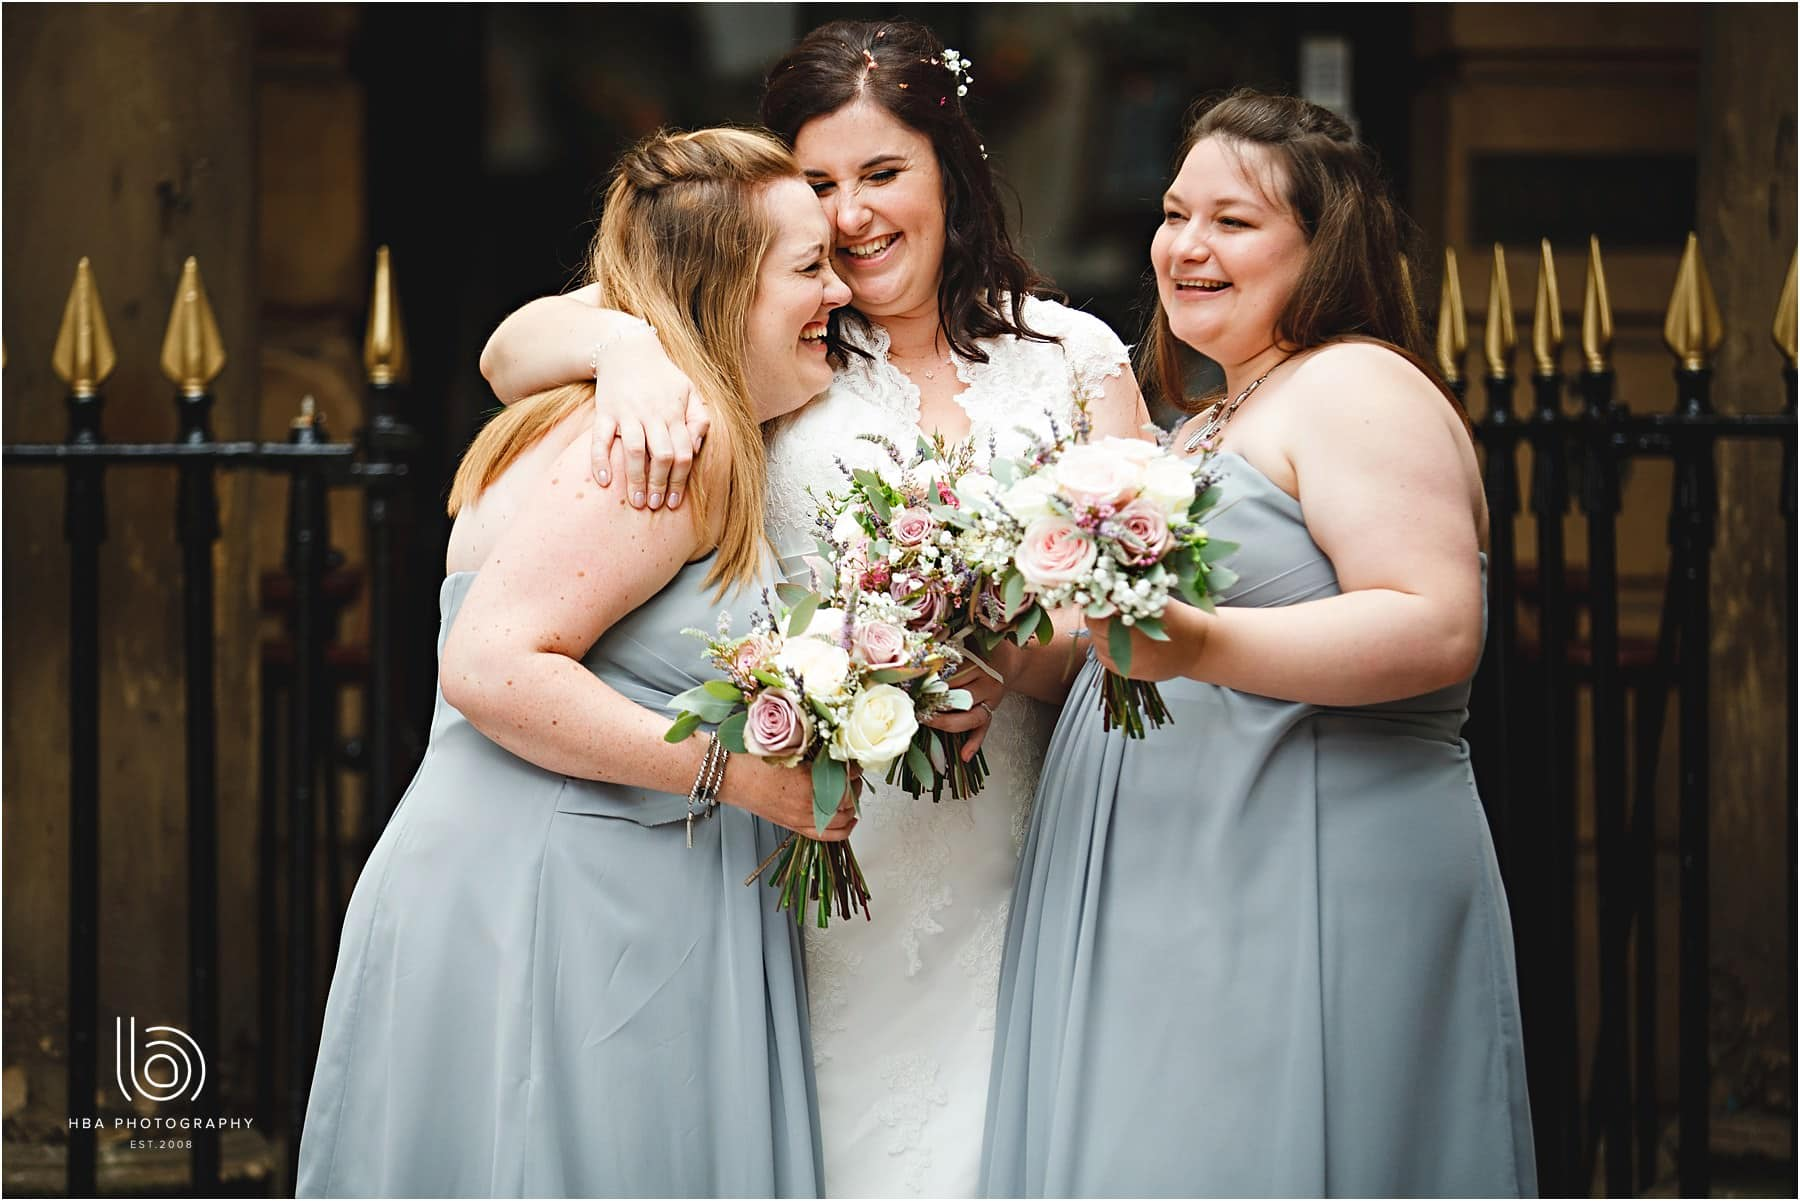 the bride and her bridesmaids together laughing